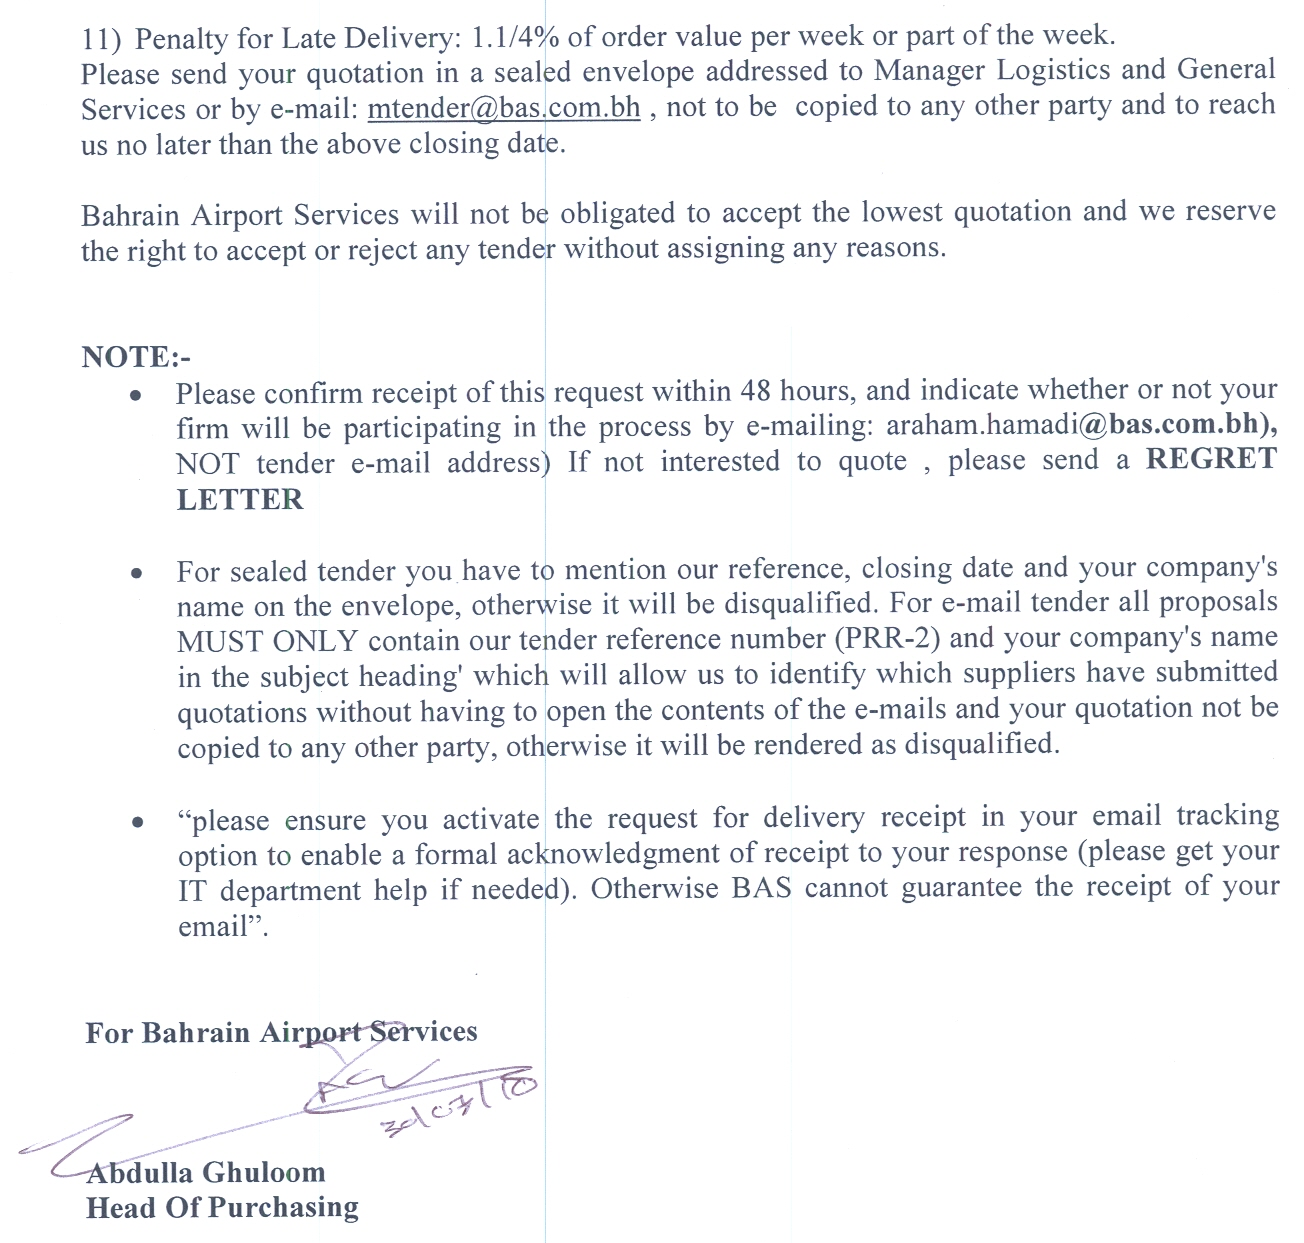 Invitation to Tender (PRR-2) #2 (1) - Bahrain Airport Services